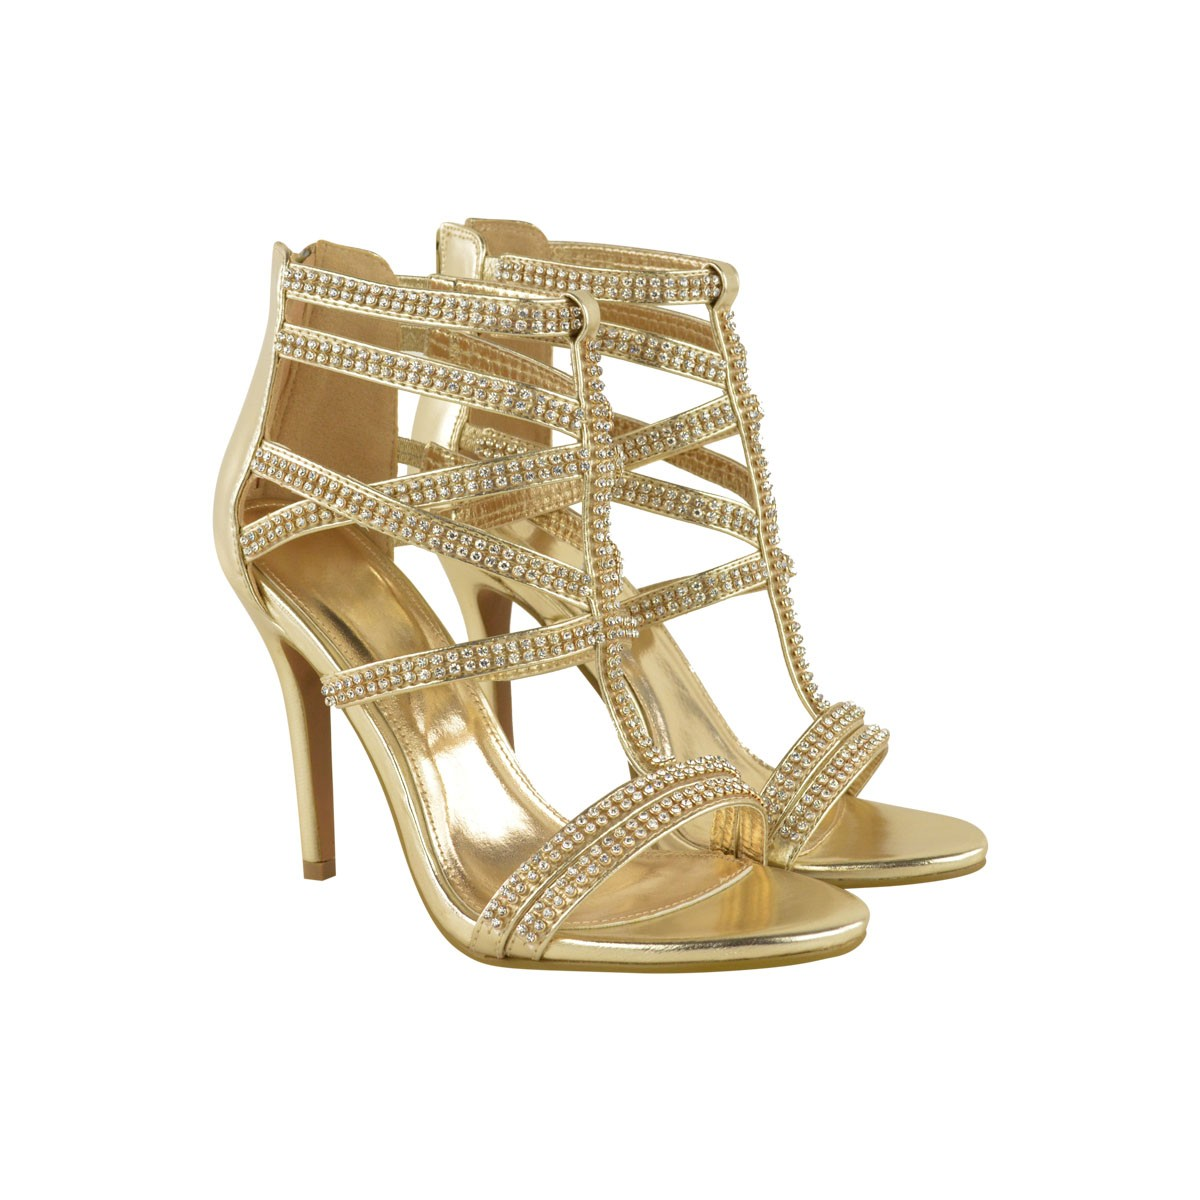 Strappy Gold High Heels VvA34s8o